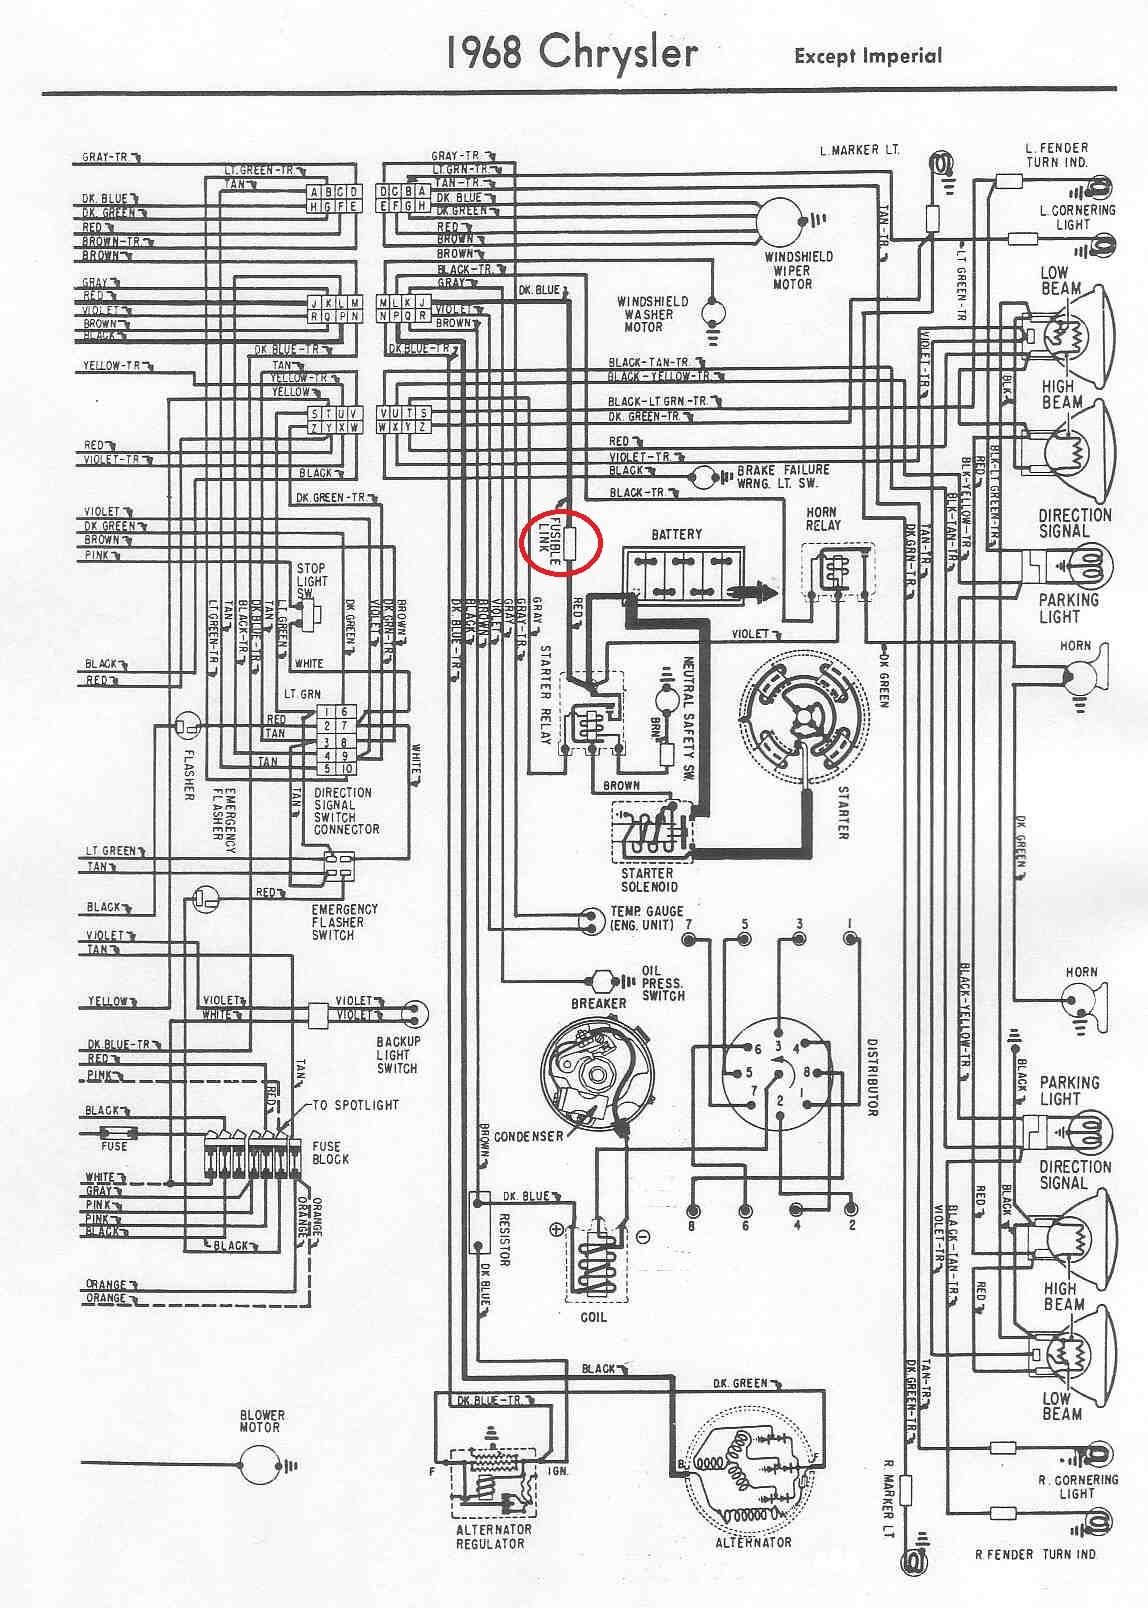 buld wiring diagram 1985 chrysler new yorker car wiring diagrams rh justinmyers co 1991 Chrysler New Yorker 1987 Chrysler New Yorker